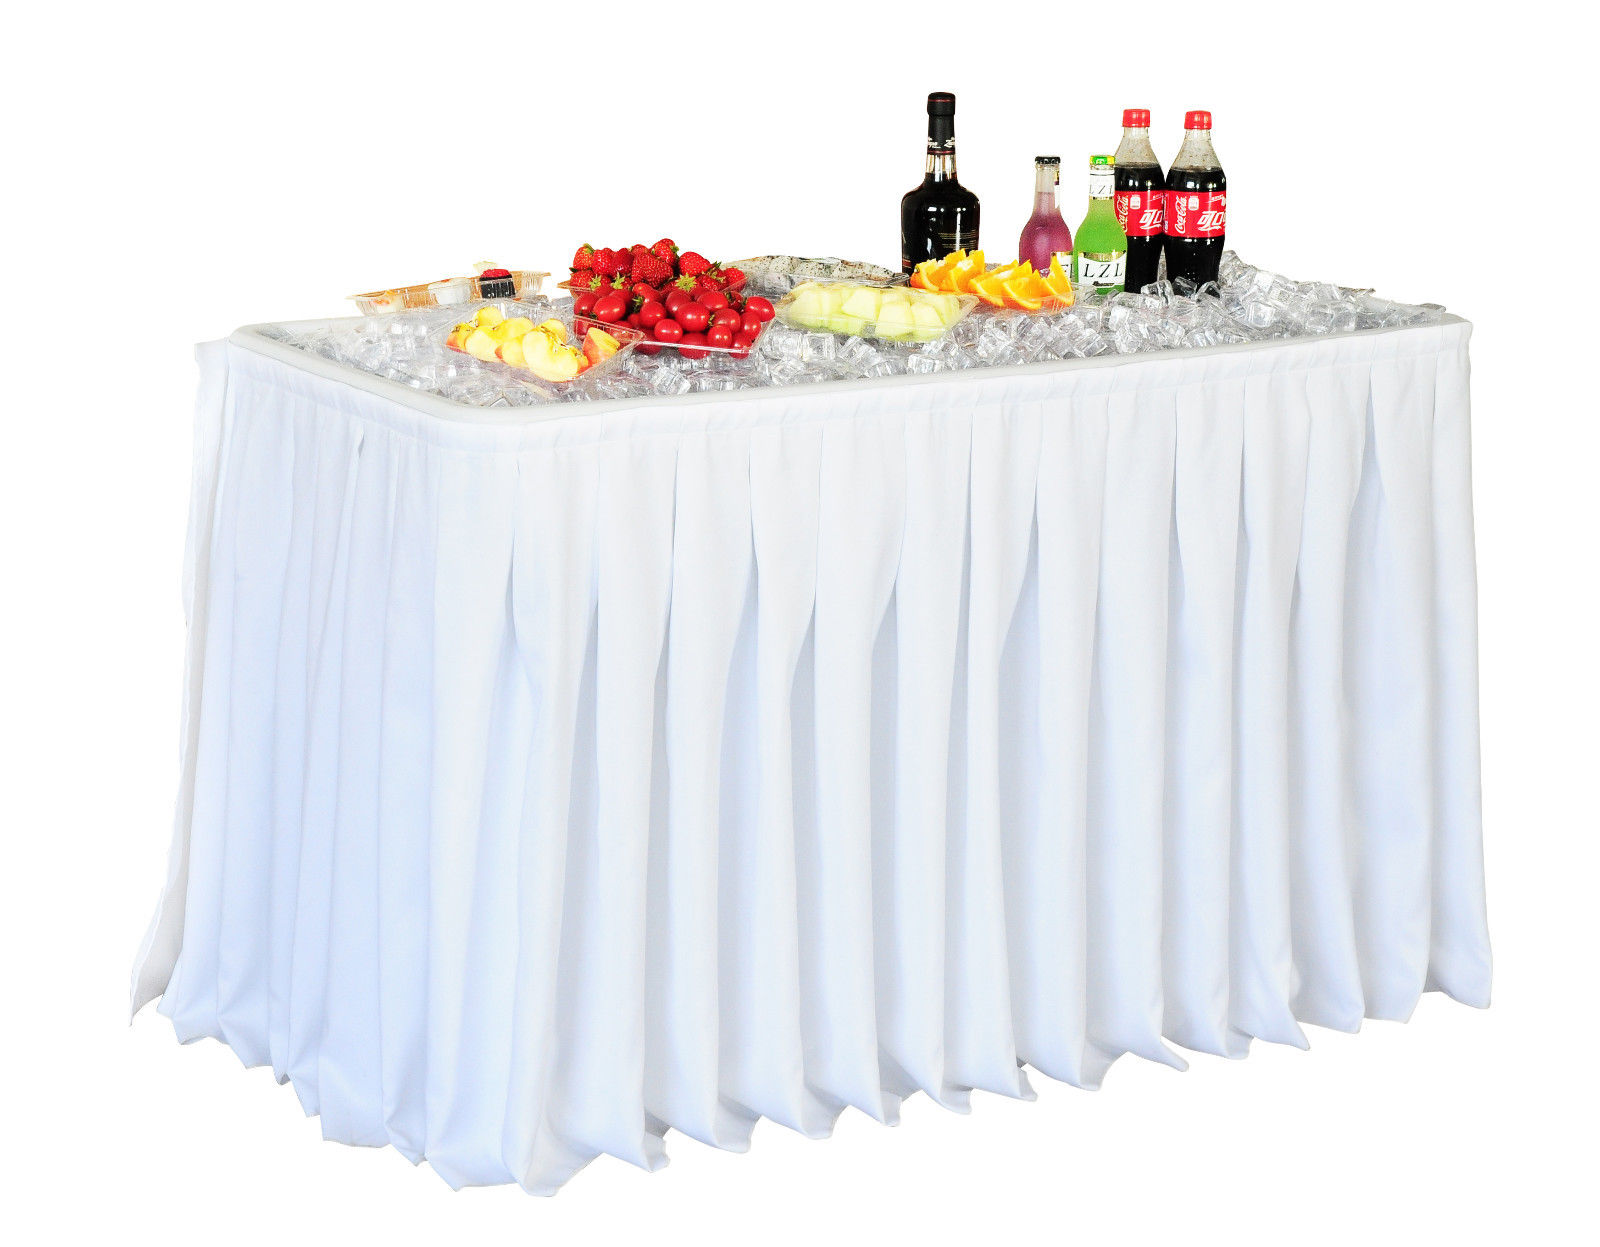 4 Foot Party Ice Folding Table Plastic With Matching Skirt image